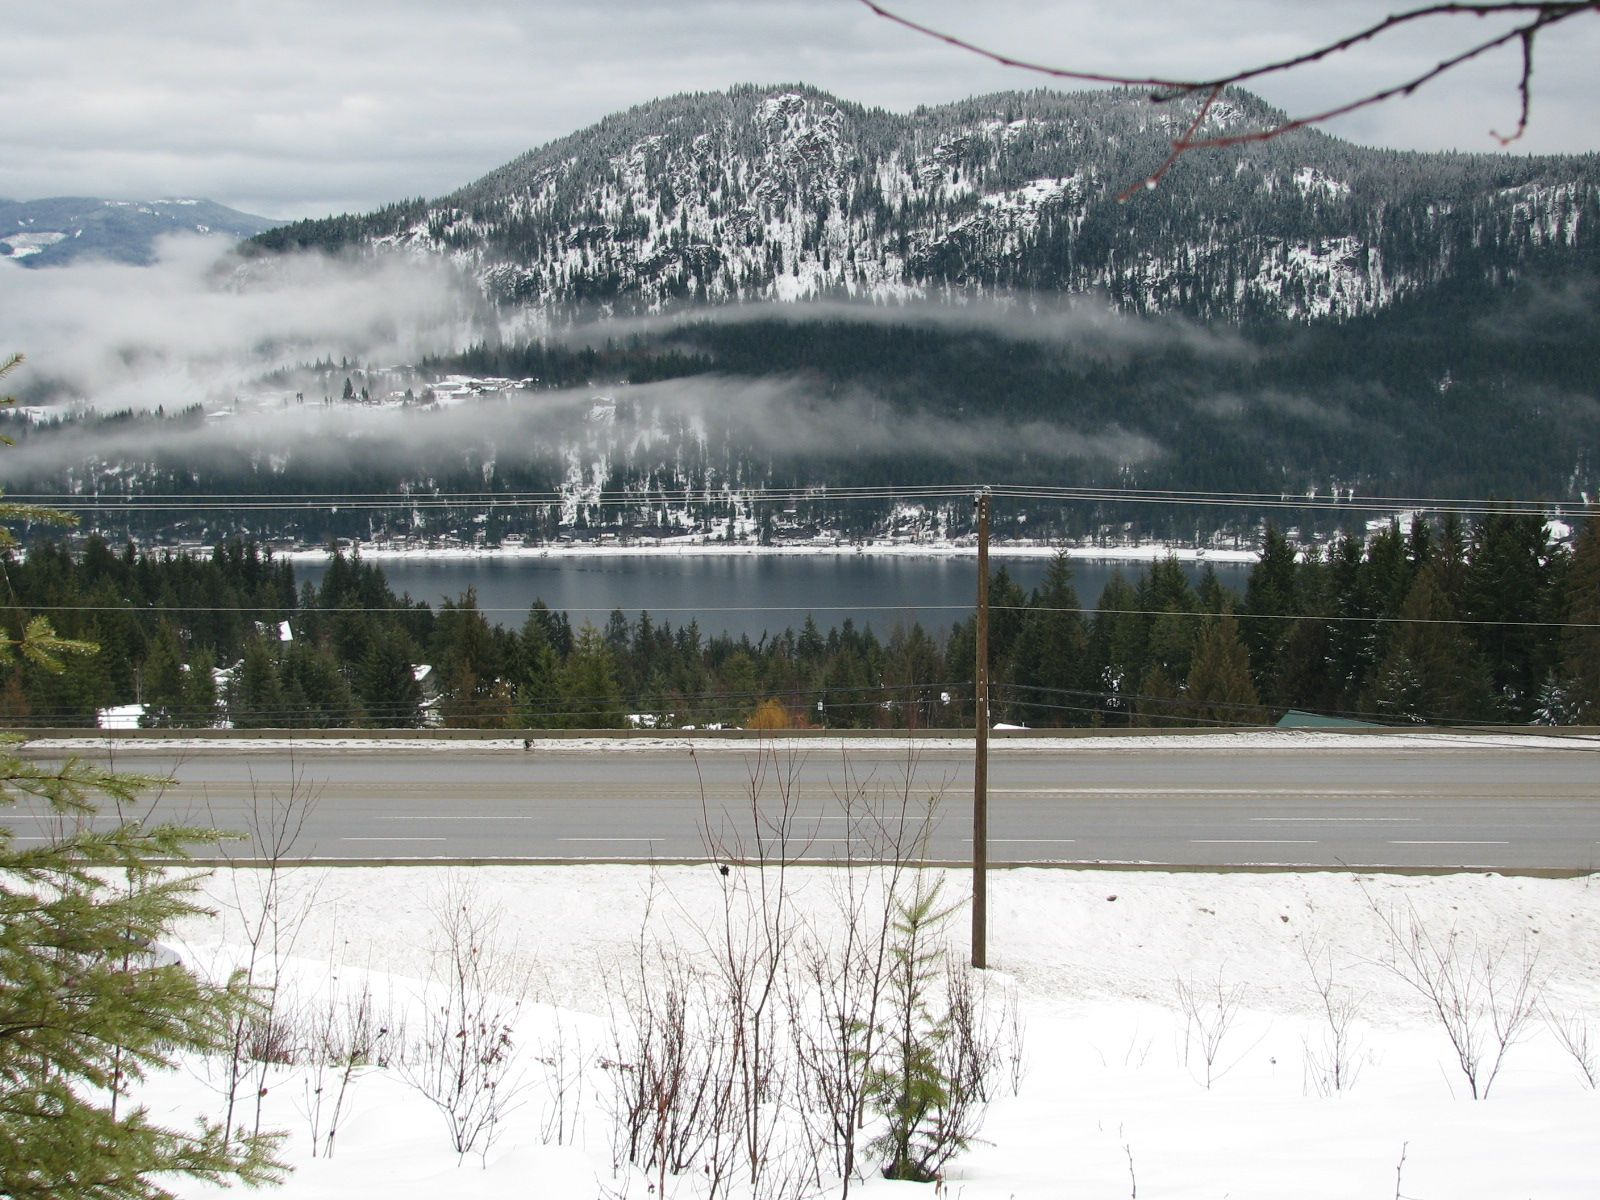 Main Photo: Lot 1 Trans Can Hwy: Blind Bay Land Only for sale (Shuswap)  : MLS®# 10148323